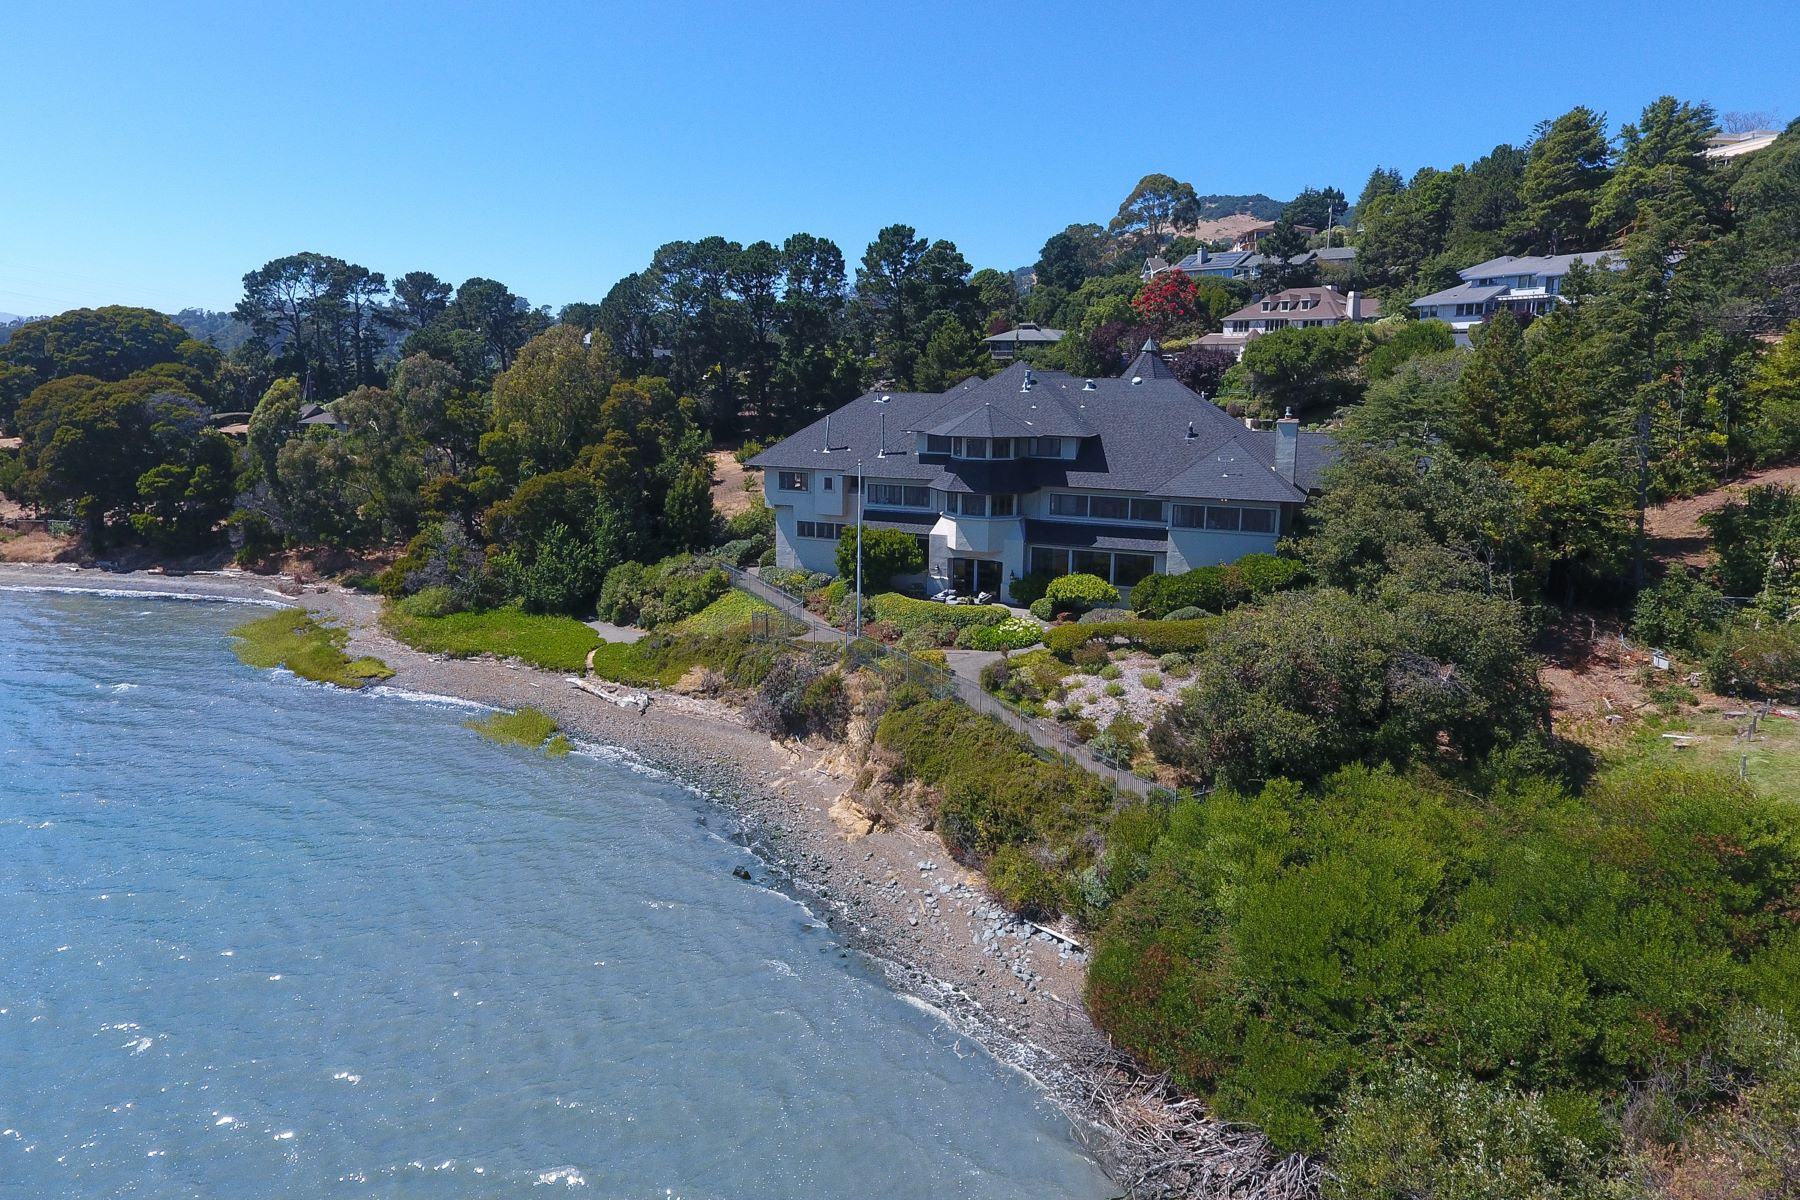 Single Family Home for Sale at Rare Waterfront Oasis! 360 Bay Way San Rafael, California 94901 United States